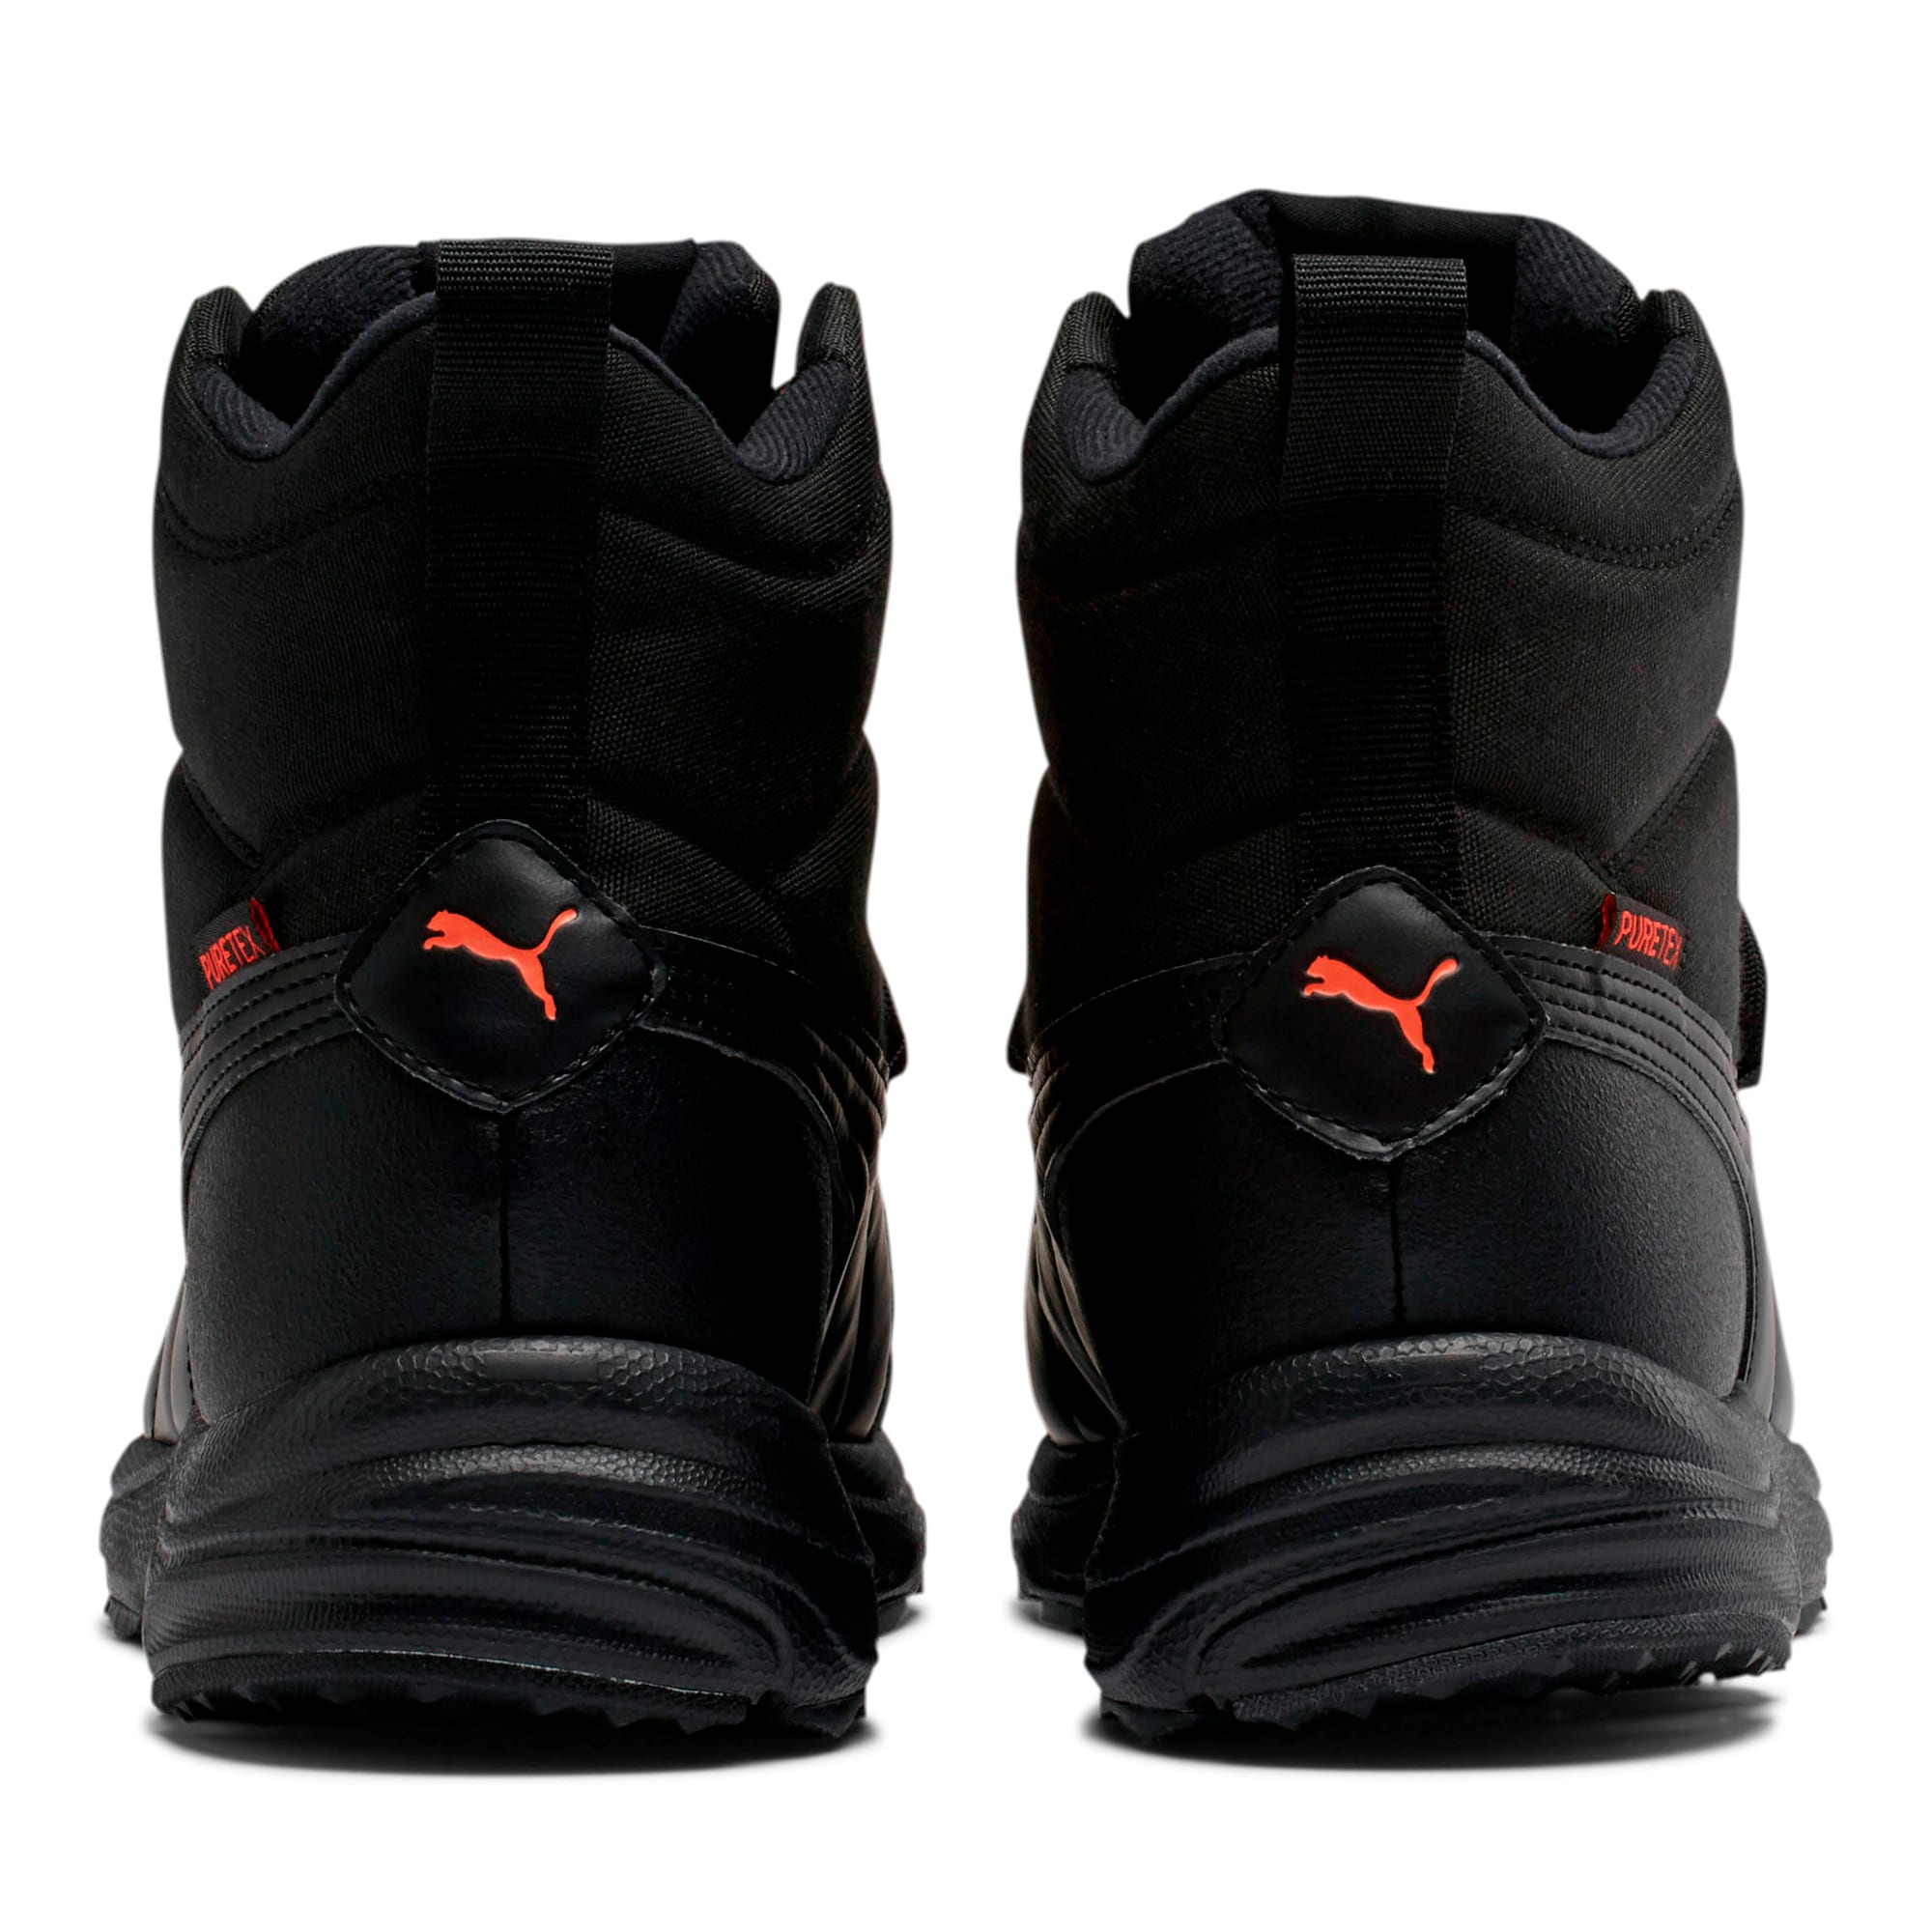 Thumbnail 3 of Axis Trail Winter Boots, Black-Nrgy Red-Whisper White, medium